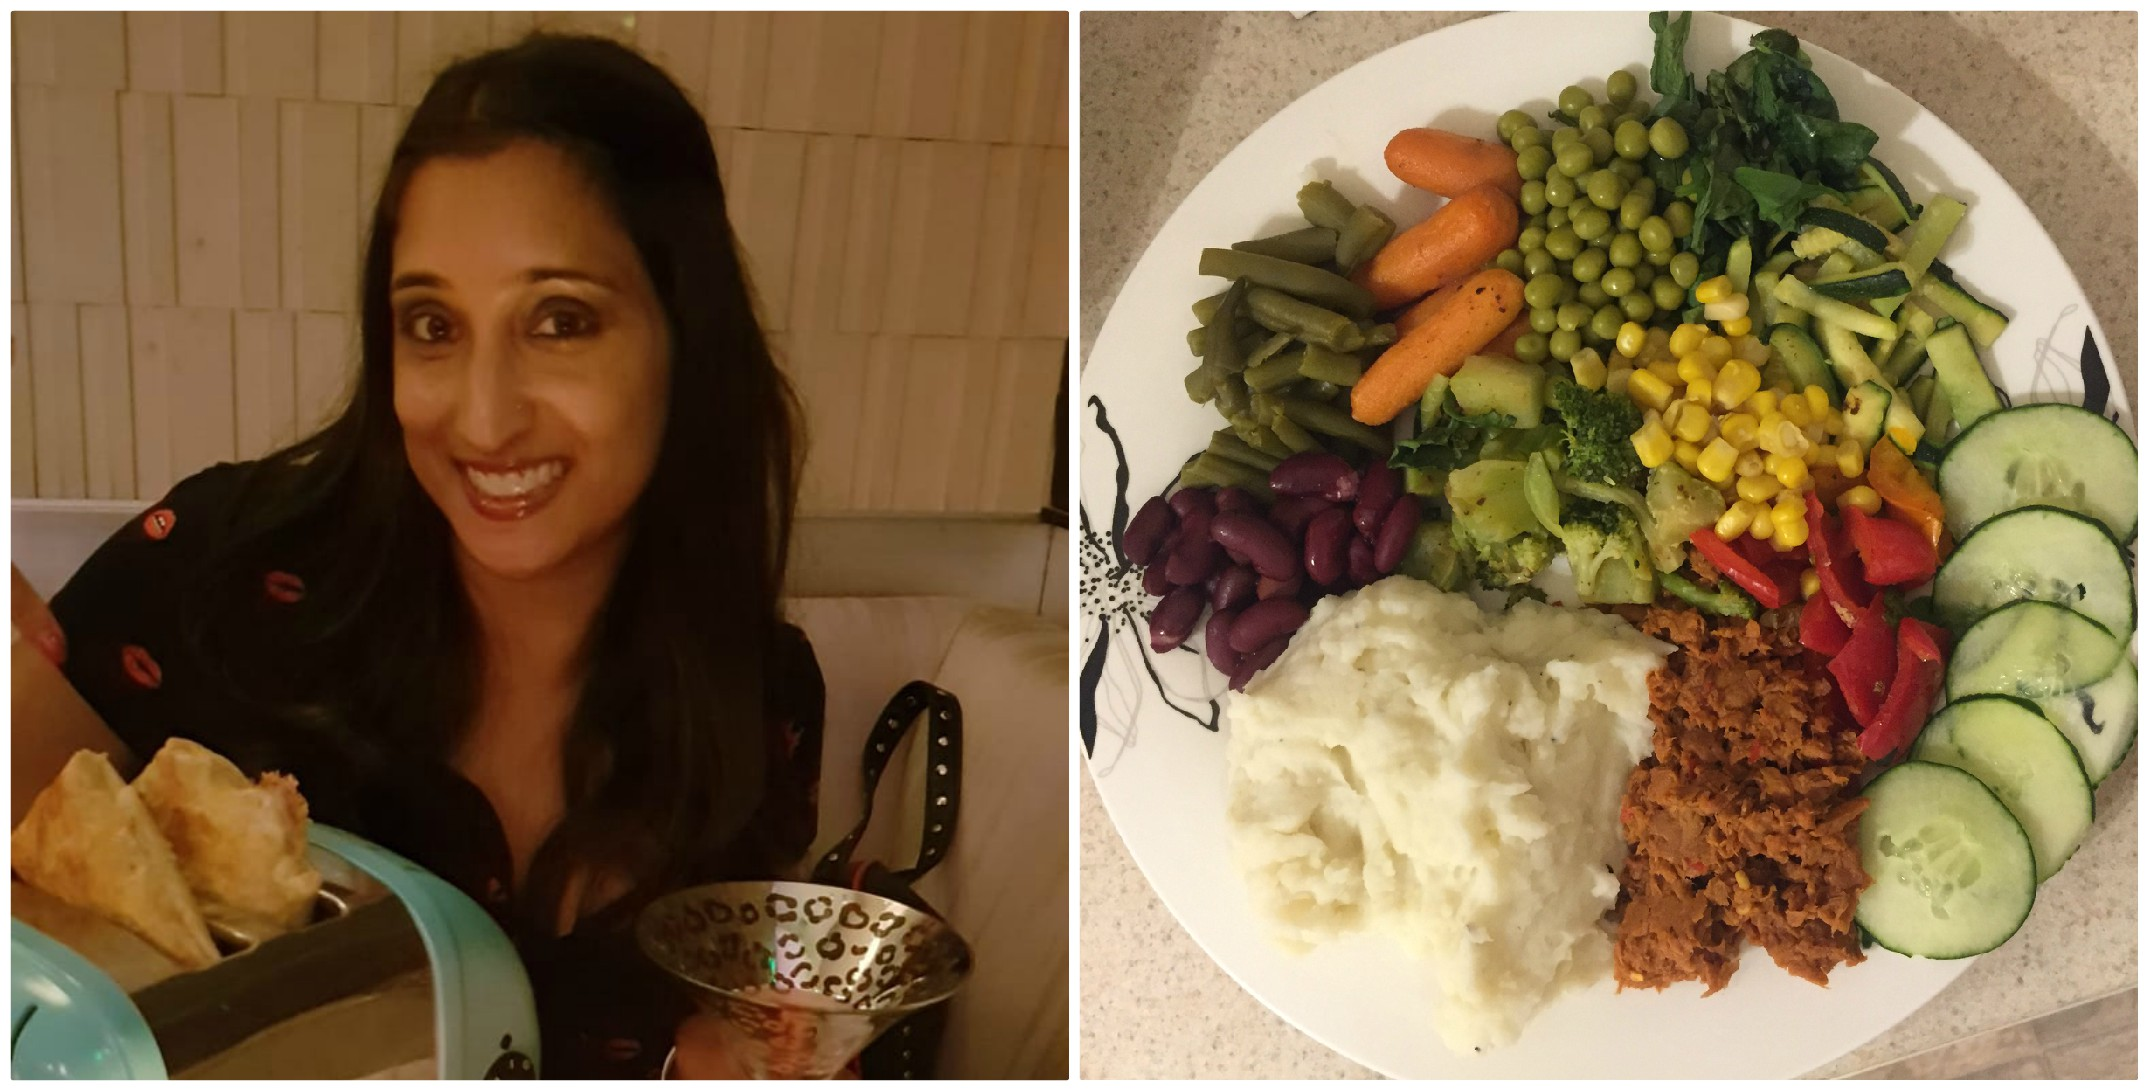 I tried a personalized diet from Habit, and it completely changed my relationship with carbs